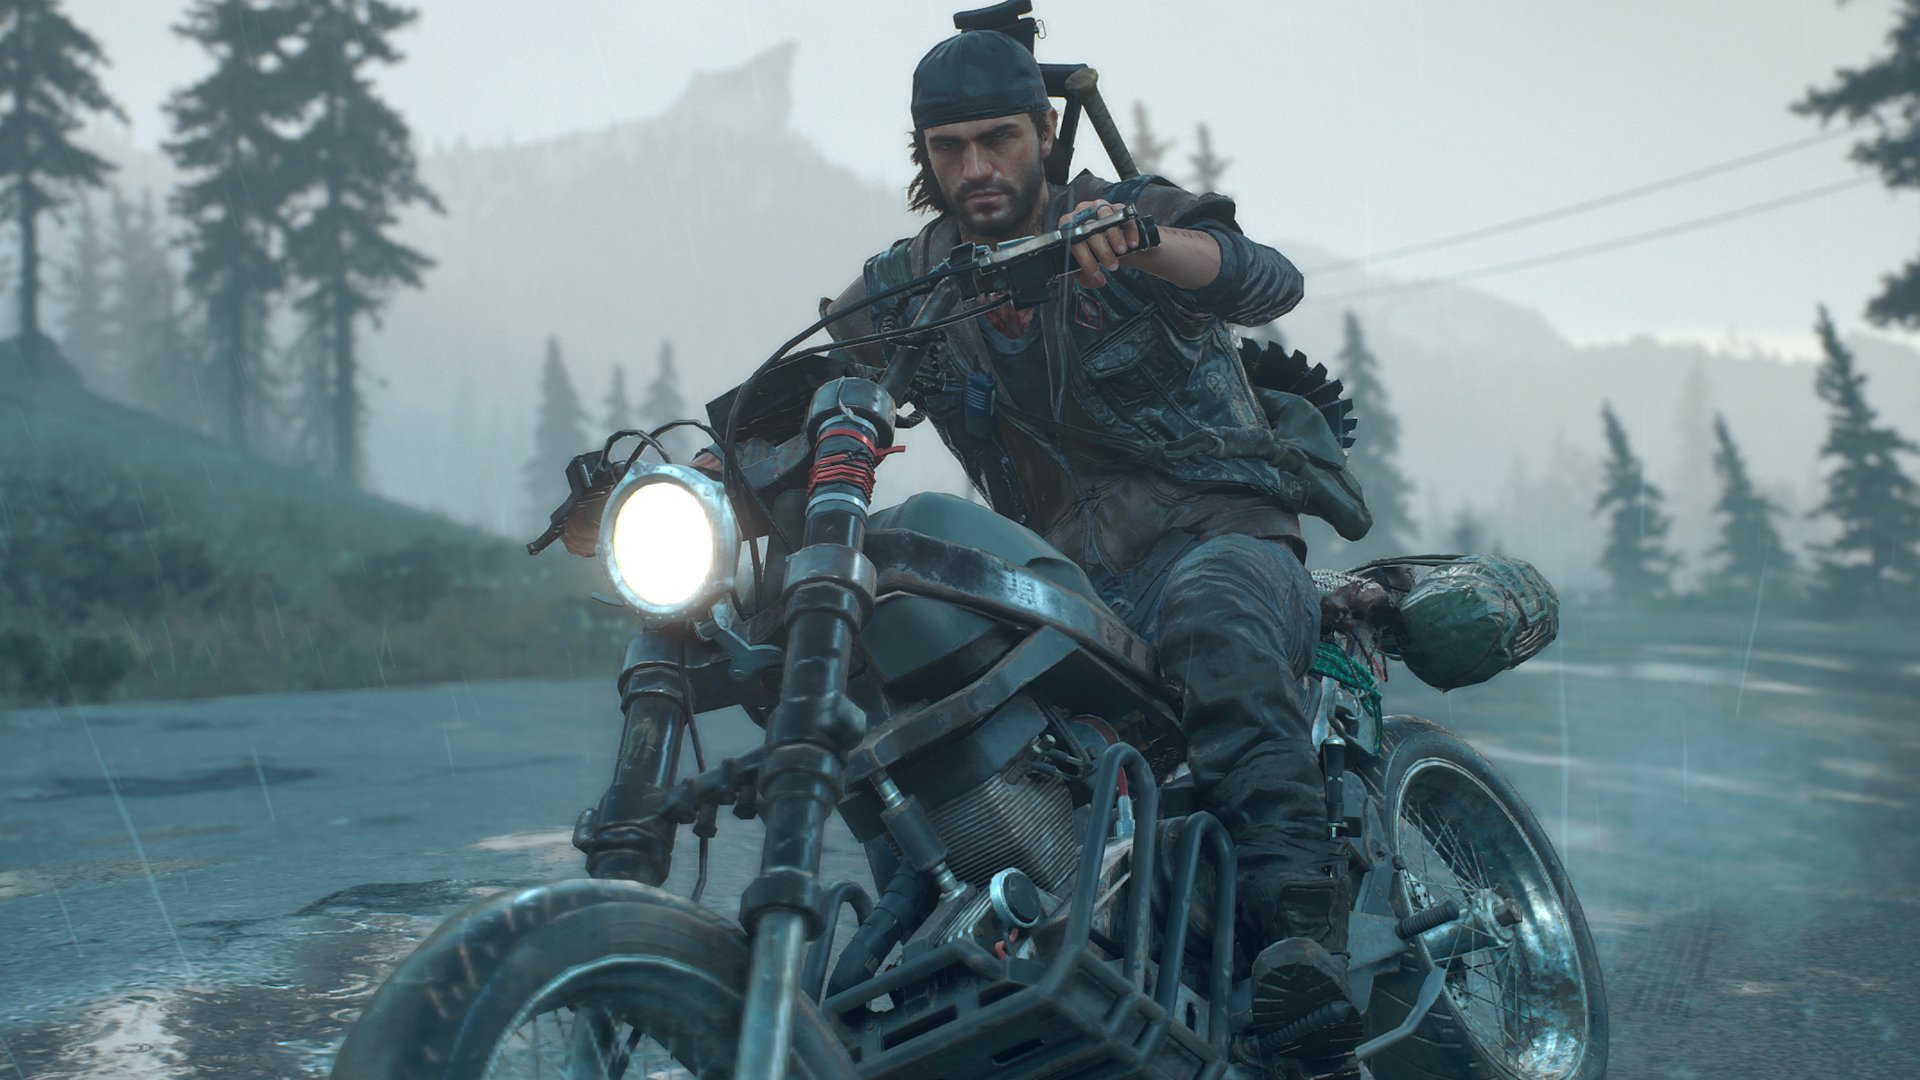 It will take gamers anywhere from 30 to 60 hours or more to complete the single-player campaign on offer in Days Gone.